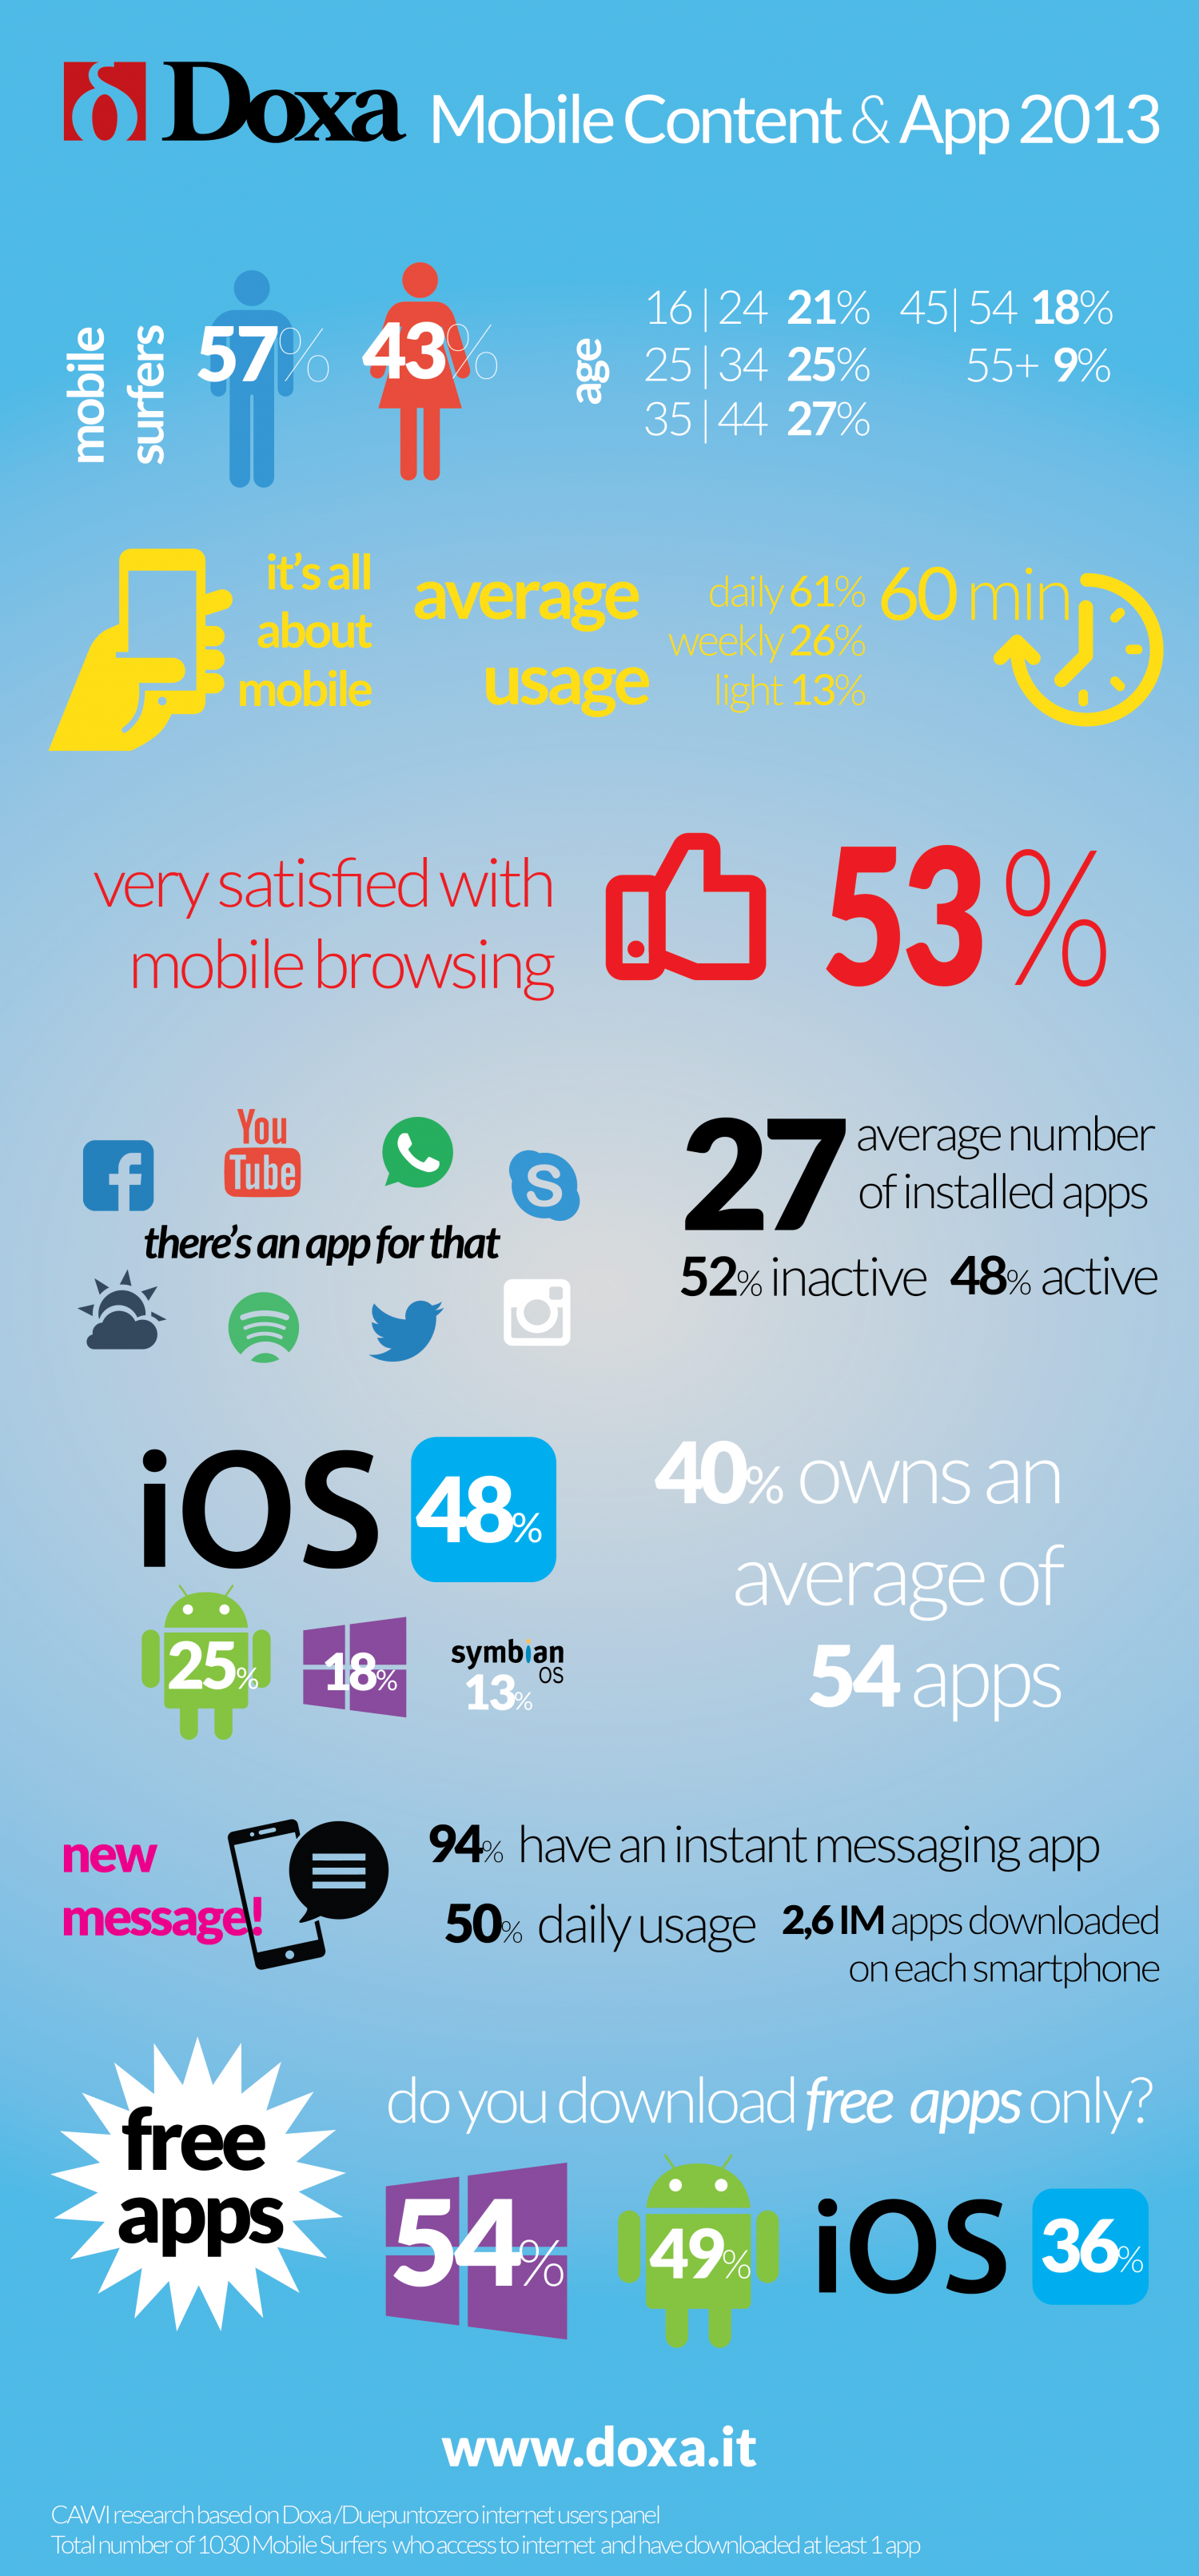 Mobile Content & App 2013 Infographic